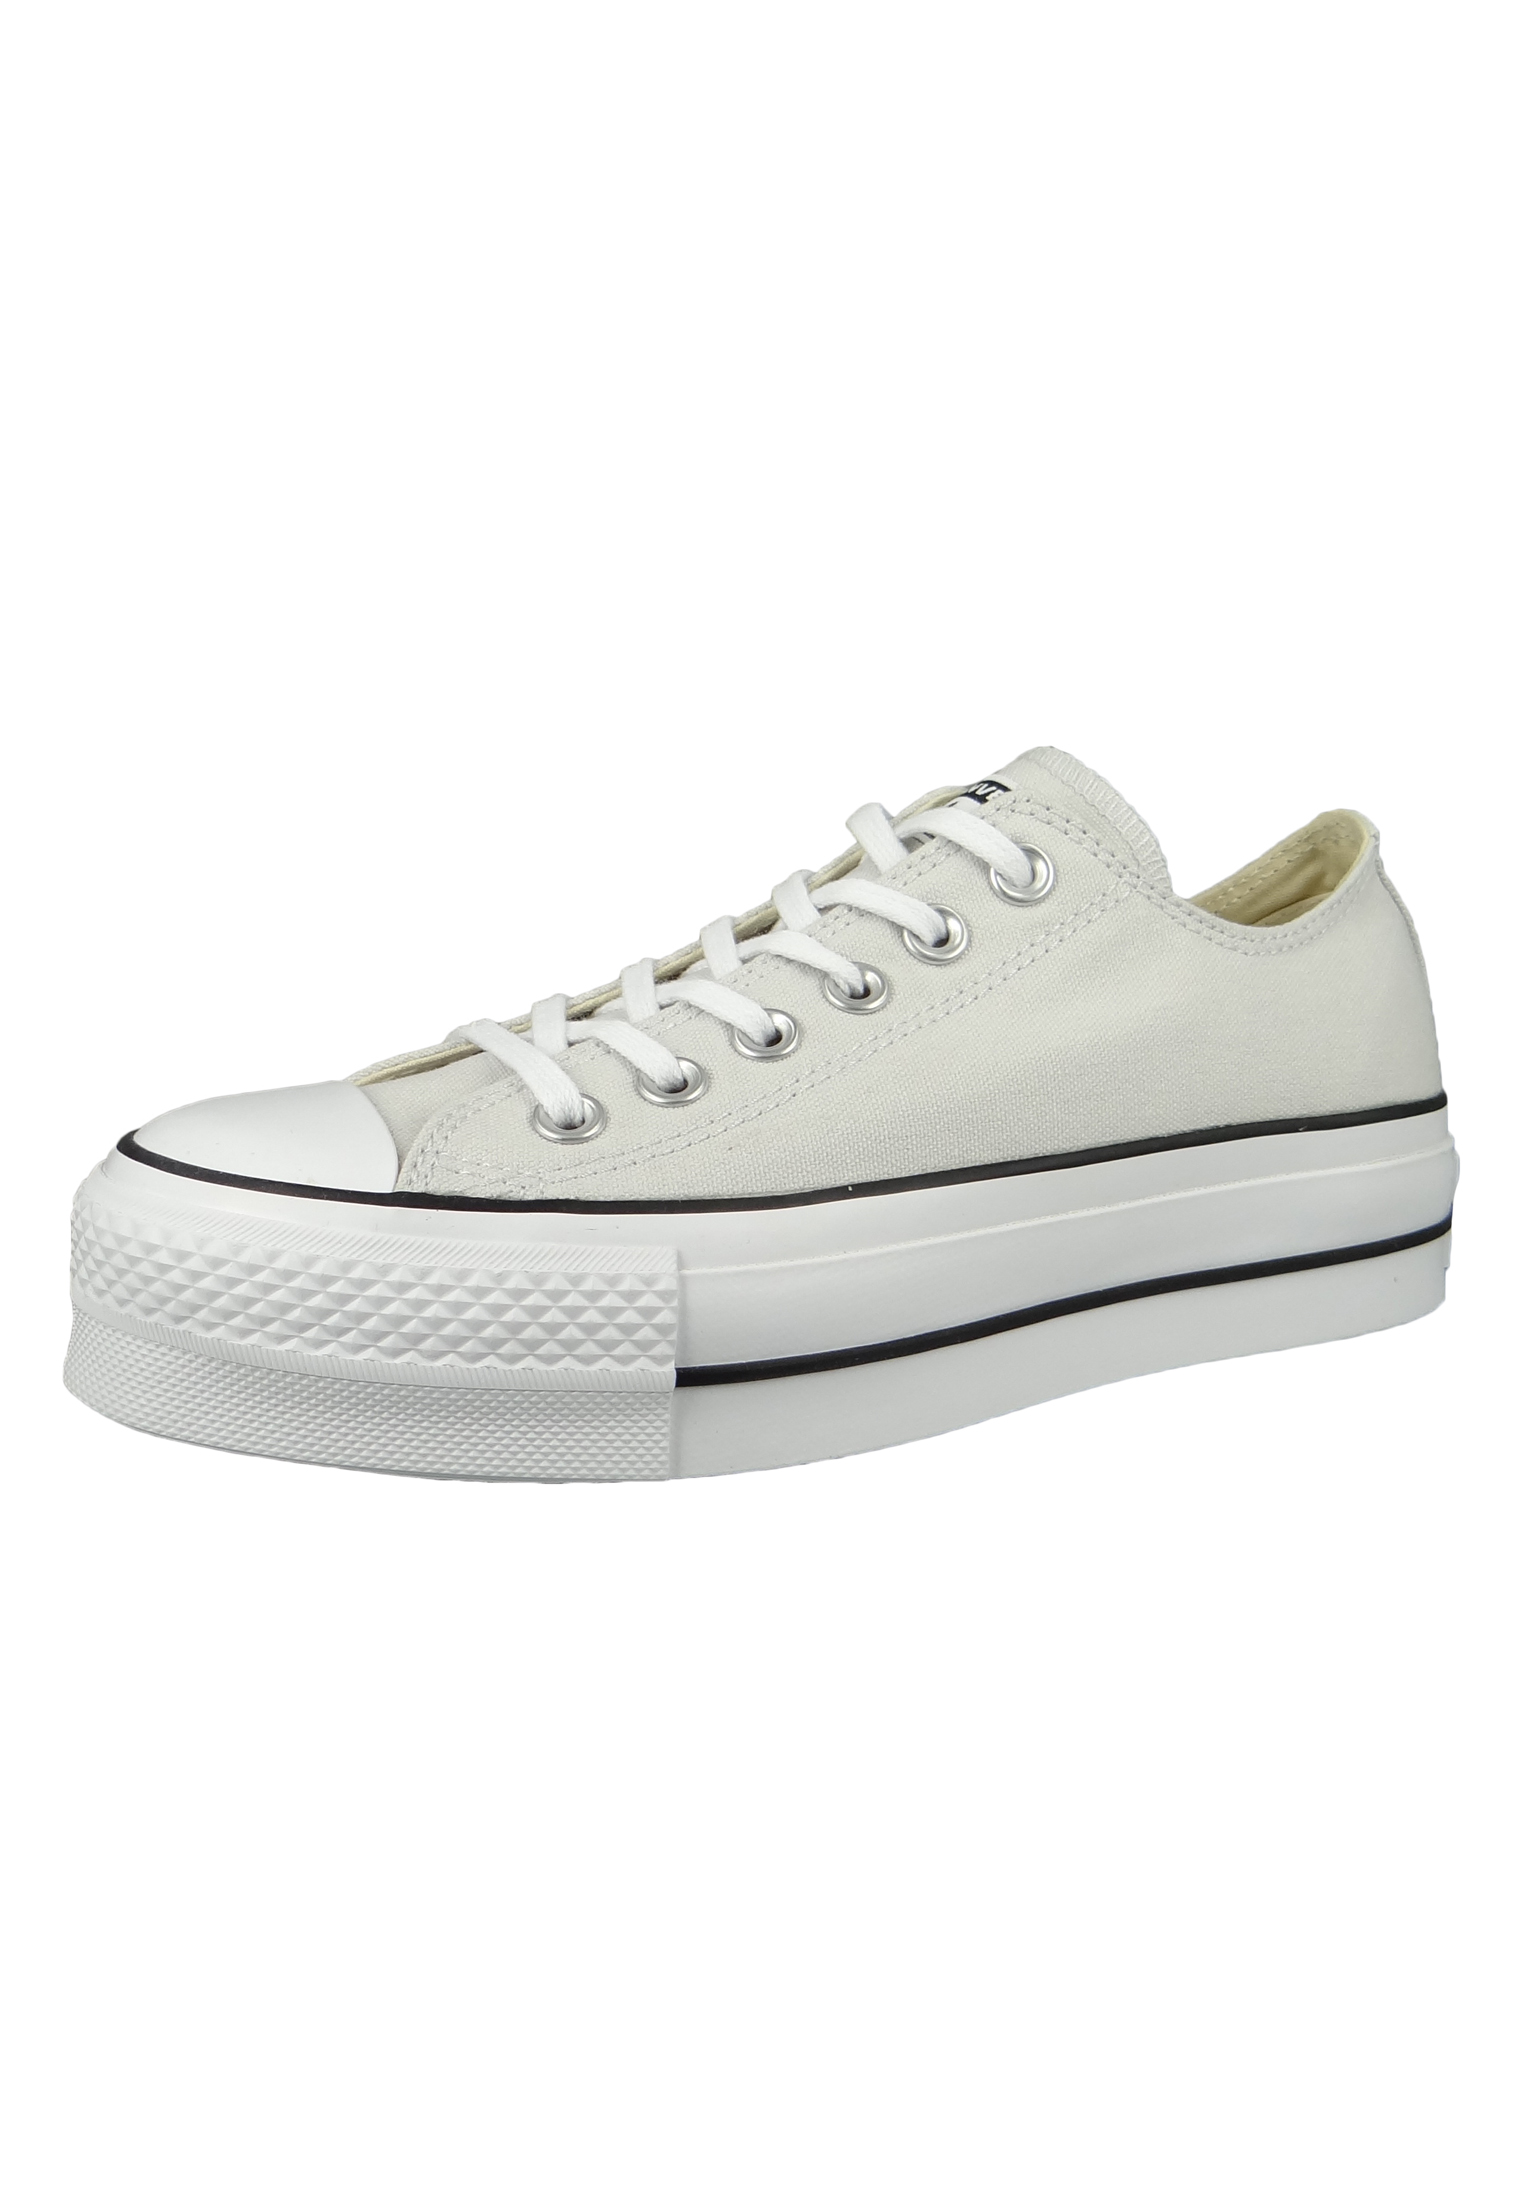 Converse Chuck Taylor All Star Lift Damen 43 Grau ajiE4XRU